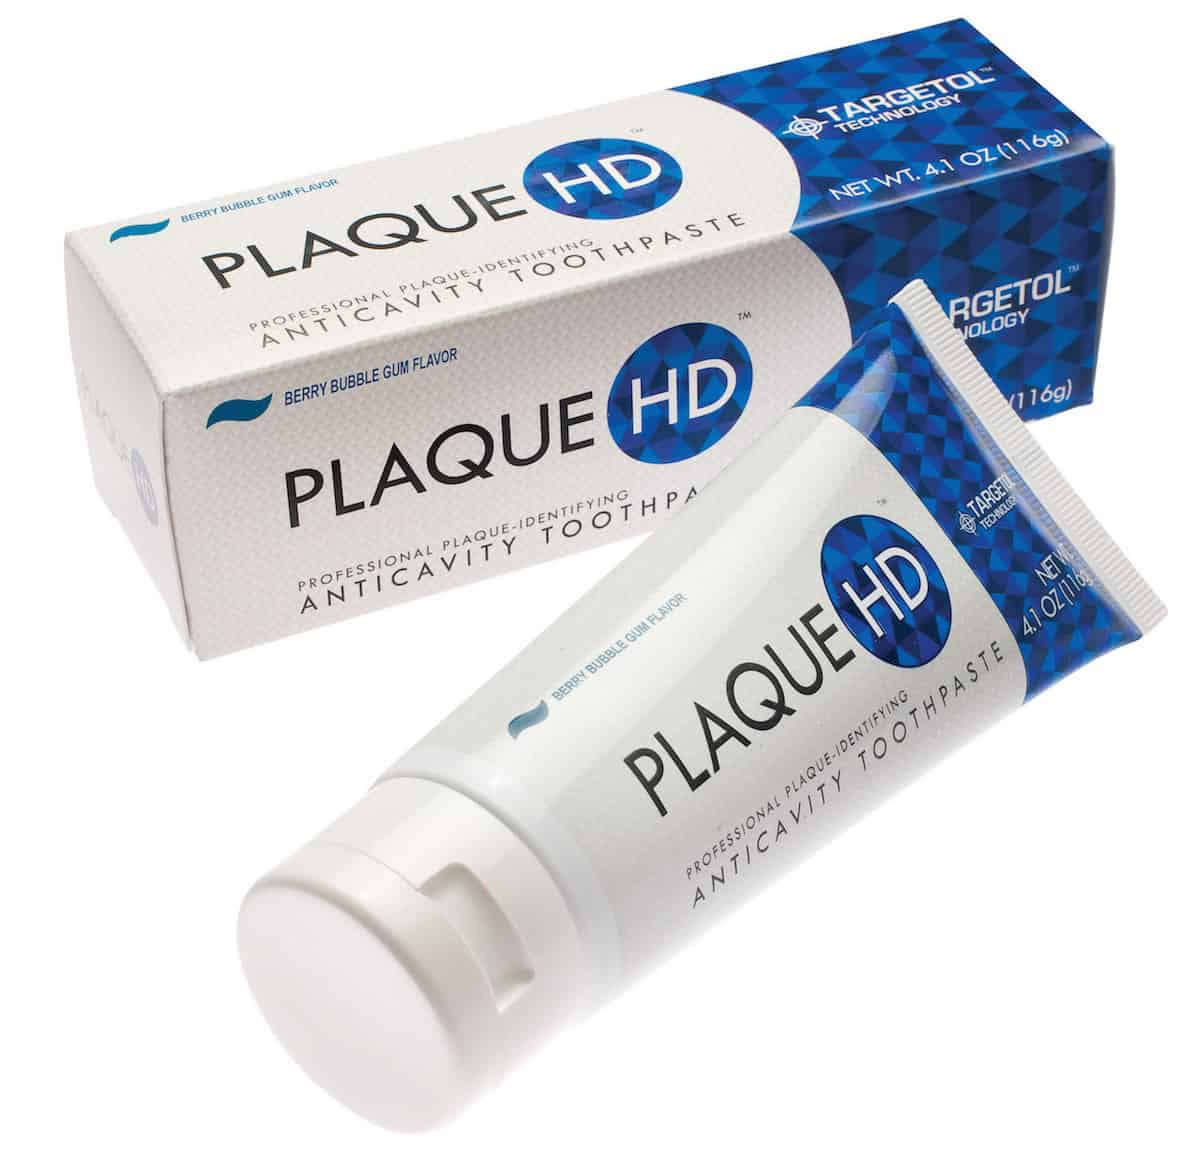 plaquehd 41 - New Product Alert: Plaque HD toothpaste